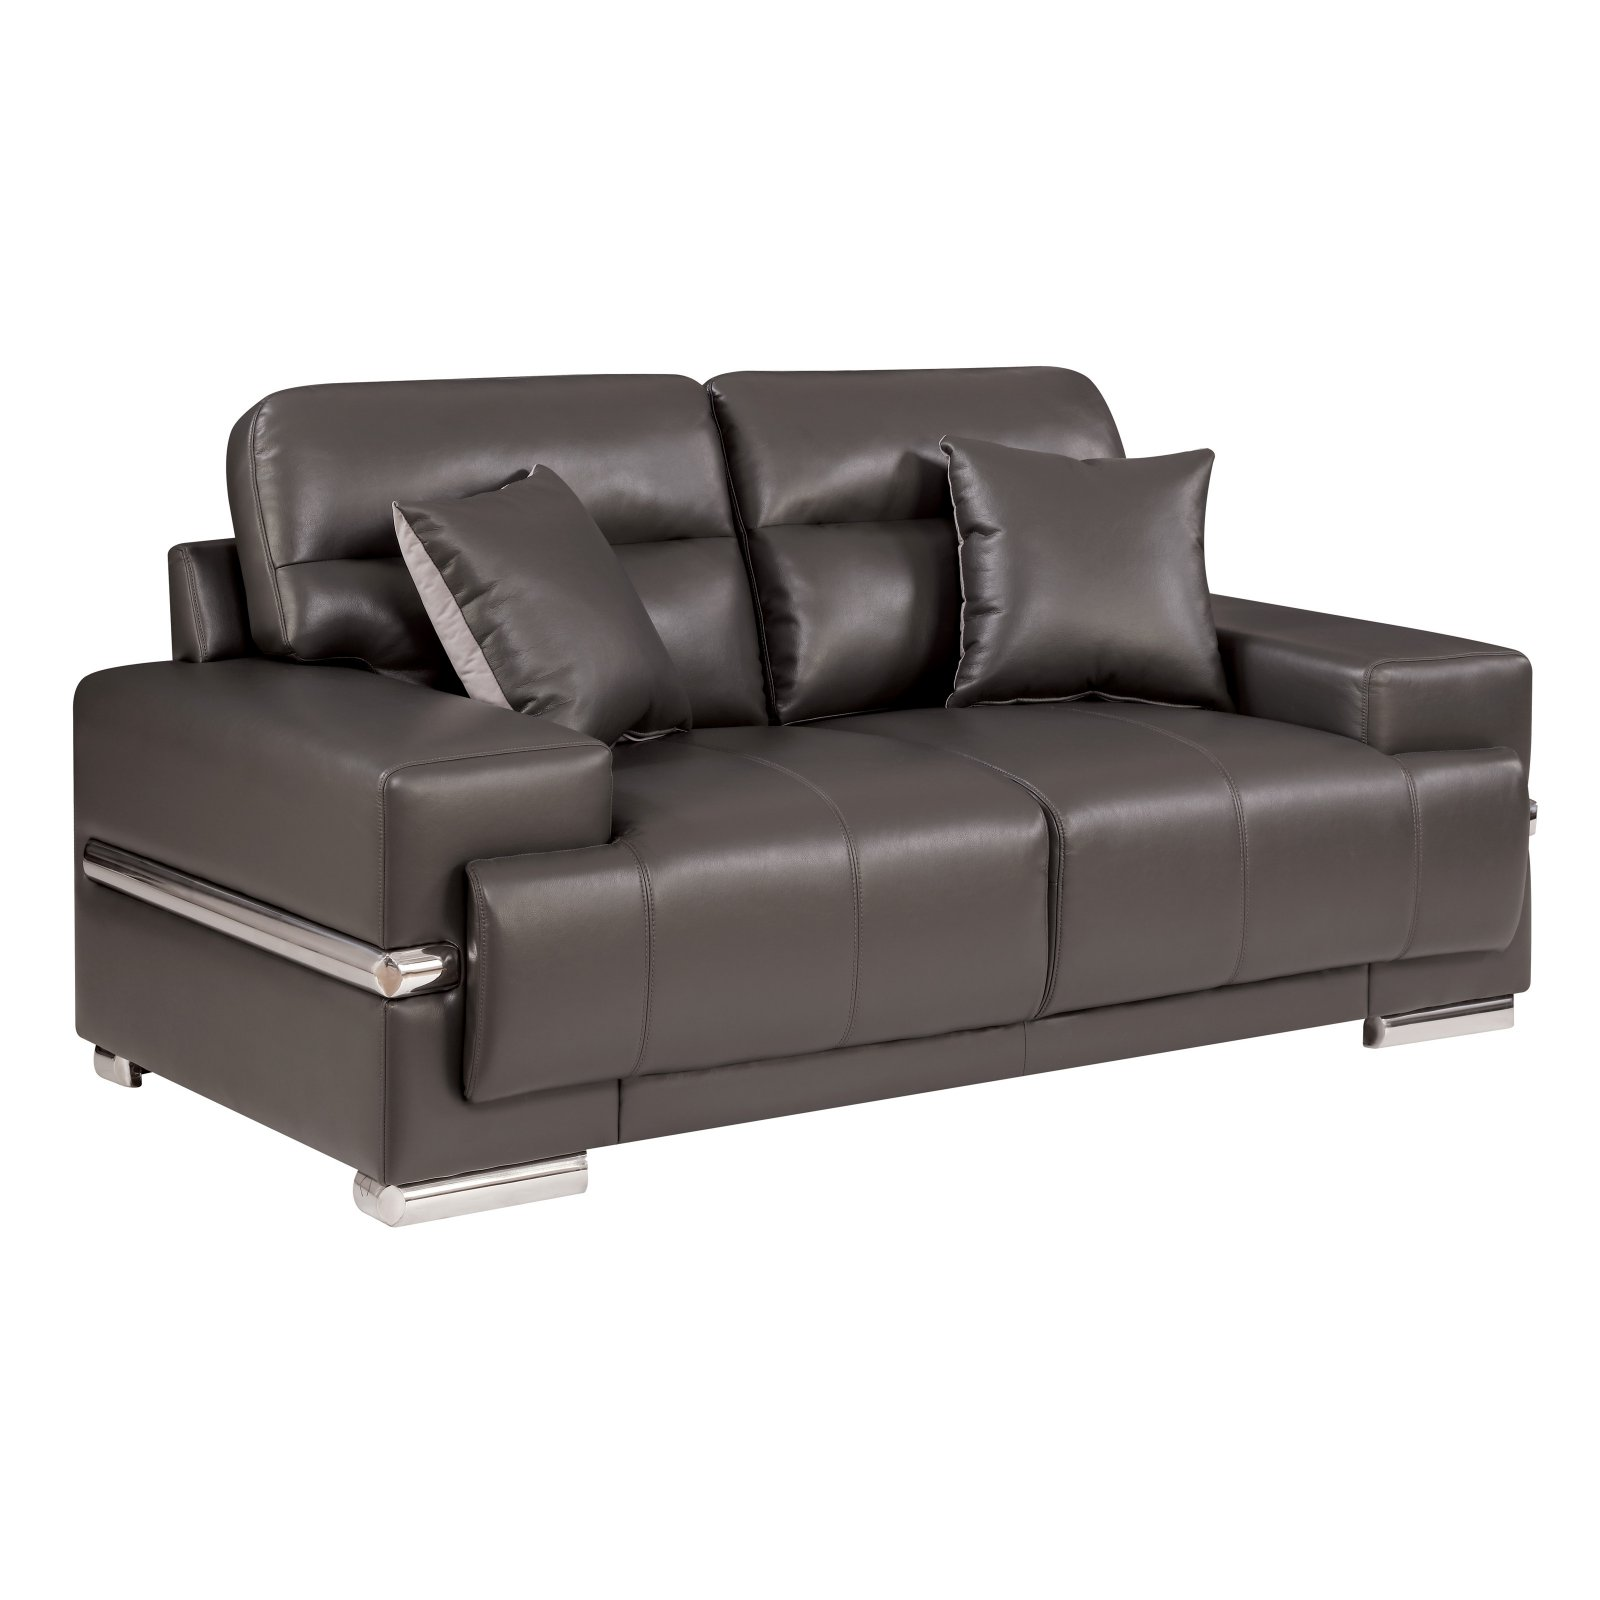 Furniture of America Preslly Contemporary Style Leatherette Loveseat